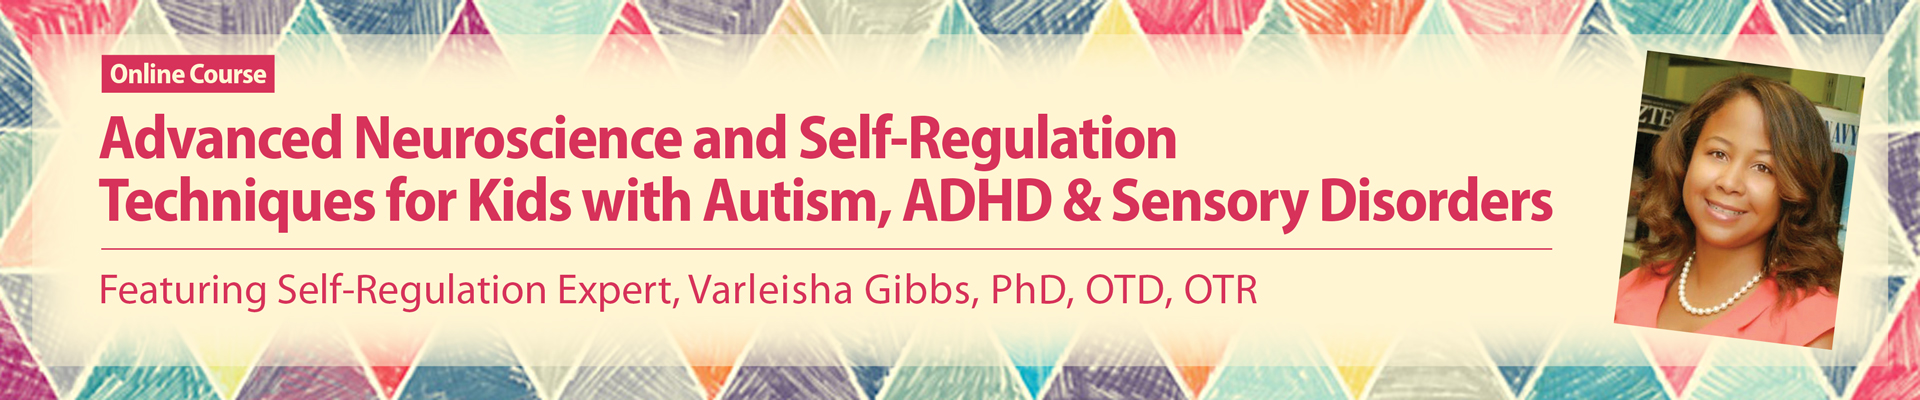 Advanced Neuroscience and Self-Regulation Techniques for Kids with Autism, ADHD & Sensory Disorders